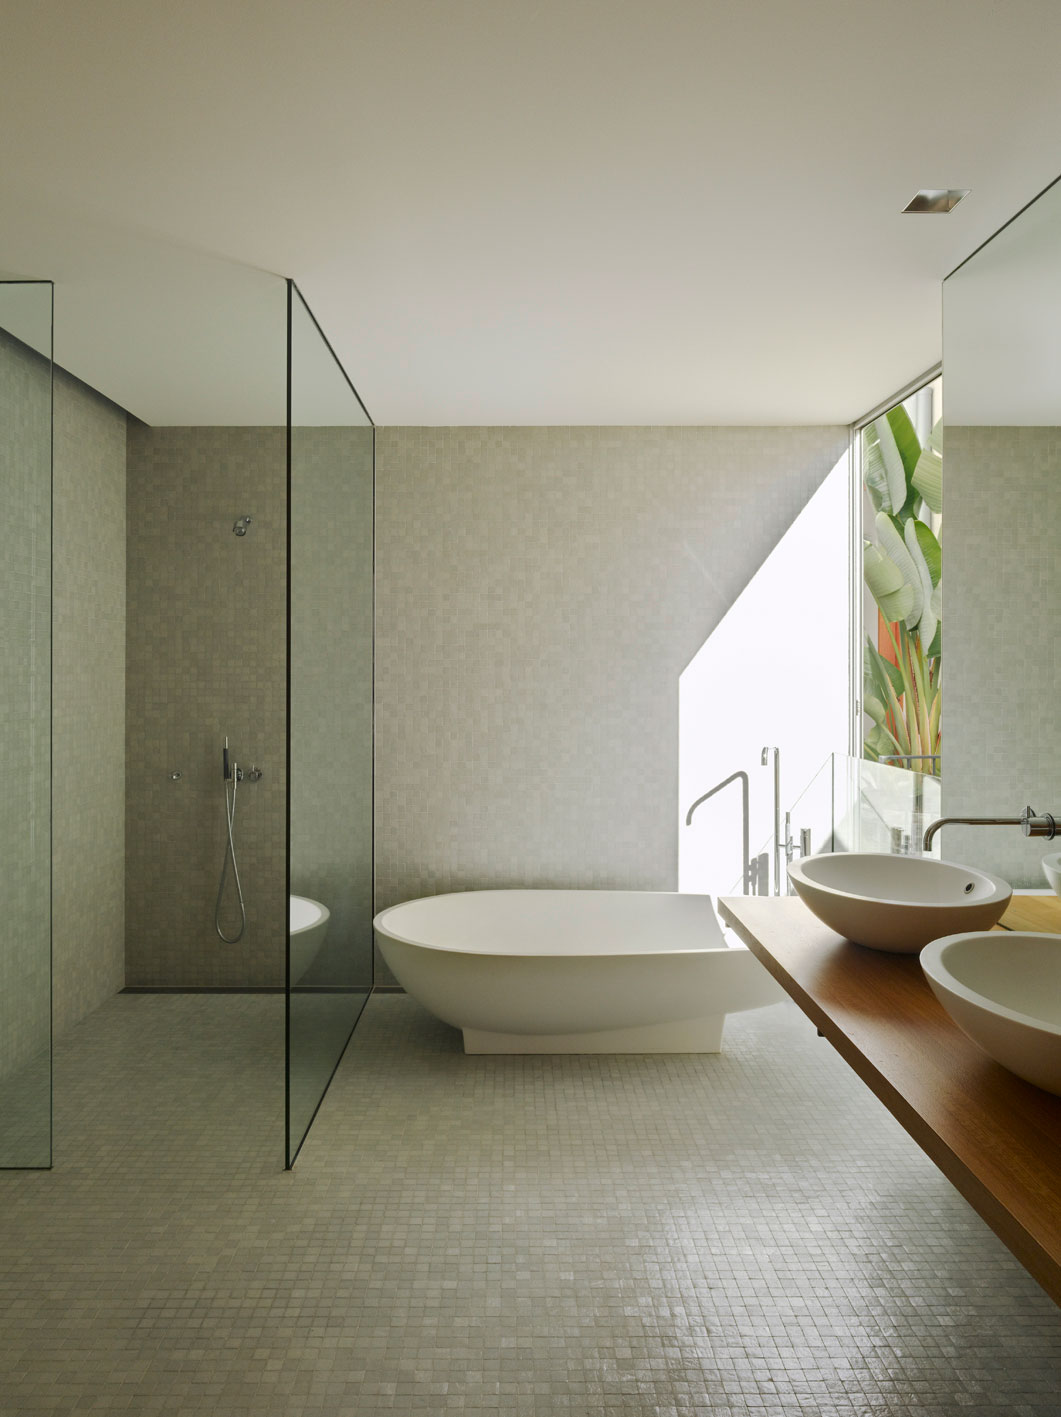 Architectural design without architectural design fees for Design your bathroom